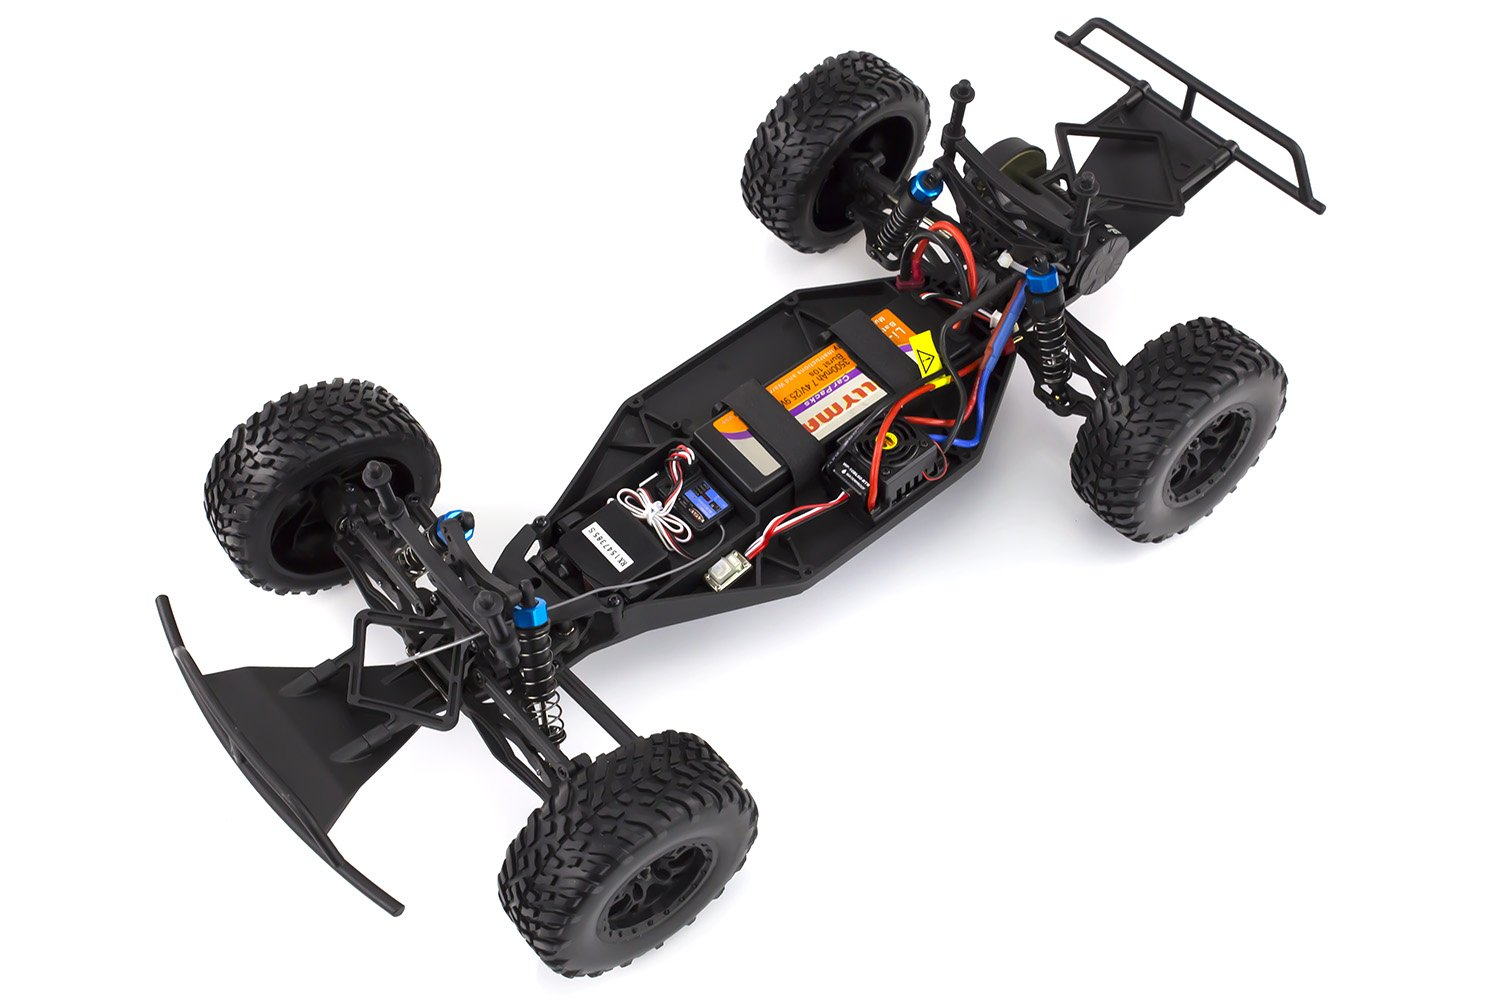 HSP 1/10 Storm BL 2WD Electric Brushless Off Road RTR RC Short Course Truck